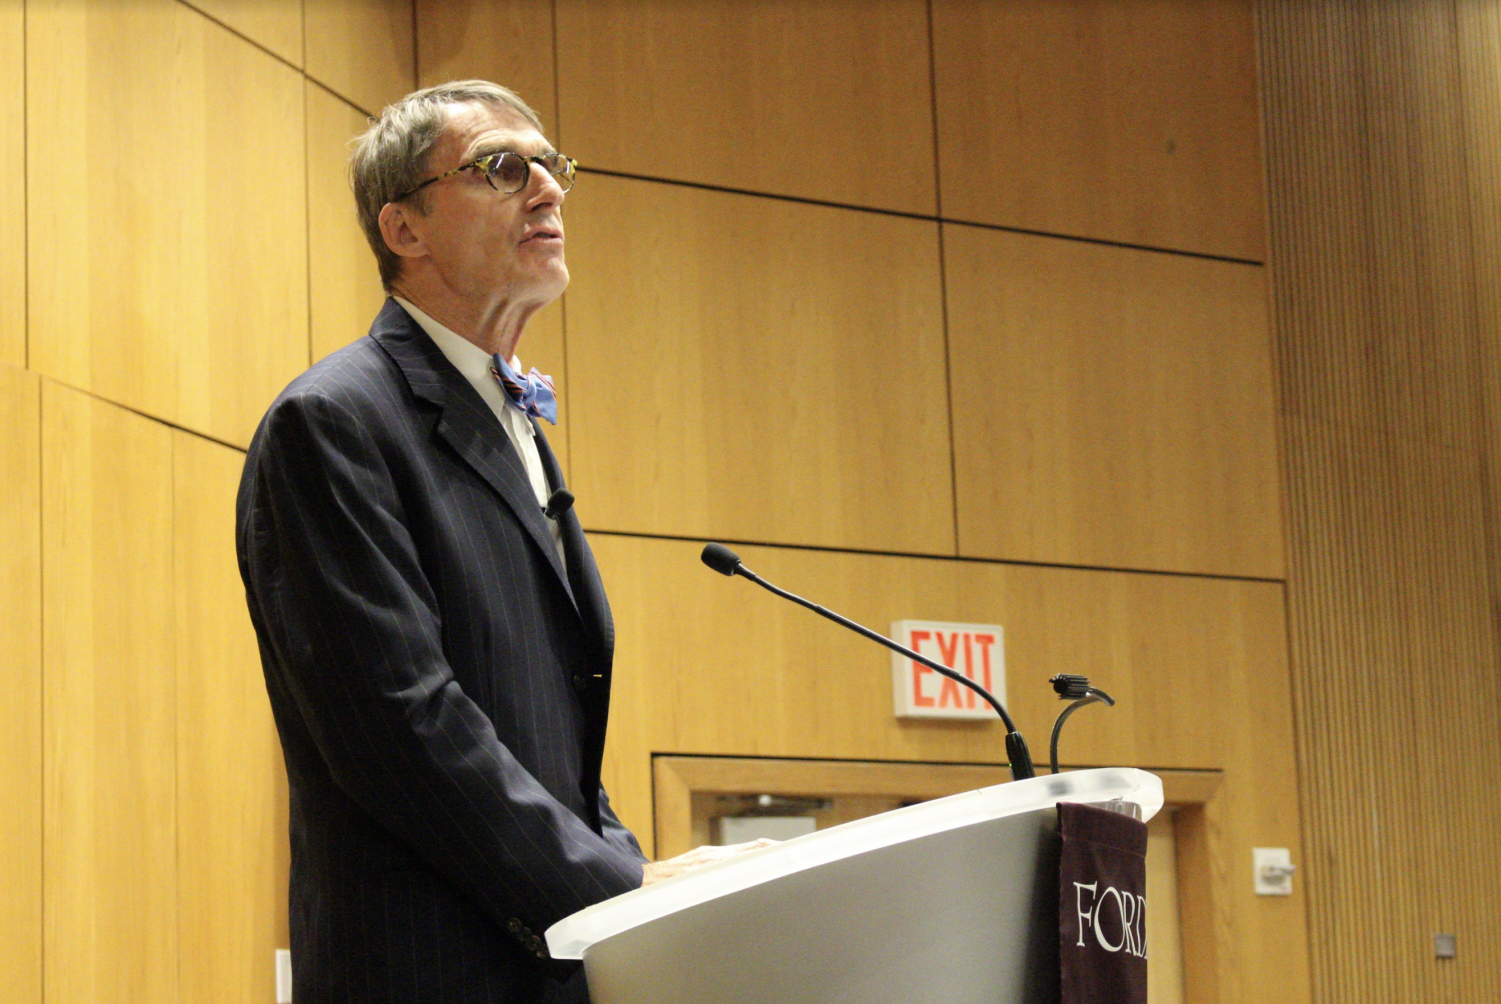 James Grant spoke to Gabelli students about historical economist Walter Bagehot and the power of money in society.